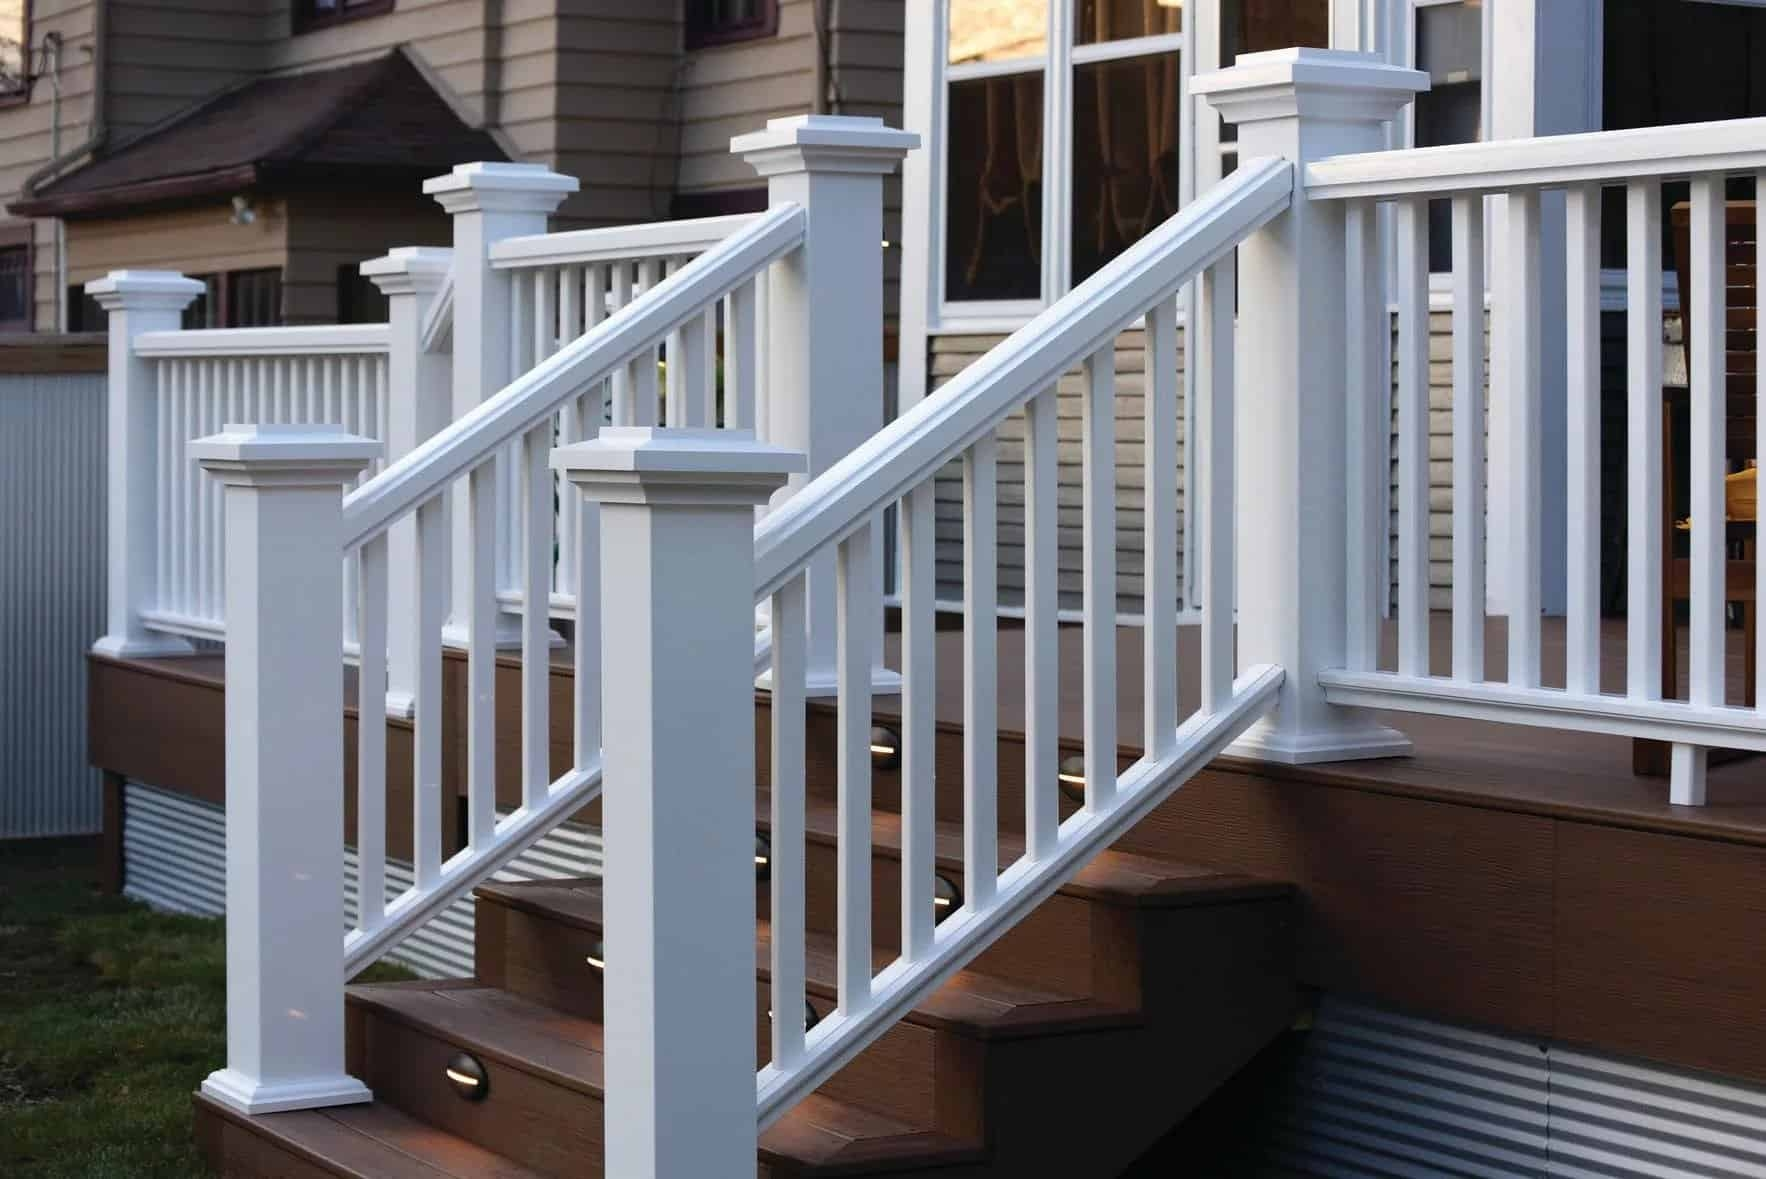 How To Install Timbertech Deck Railing Timbertech | Outdoor Railings For Steps | Design | Hand | Porch | Front Door | Simple